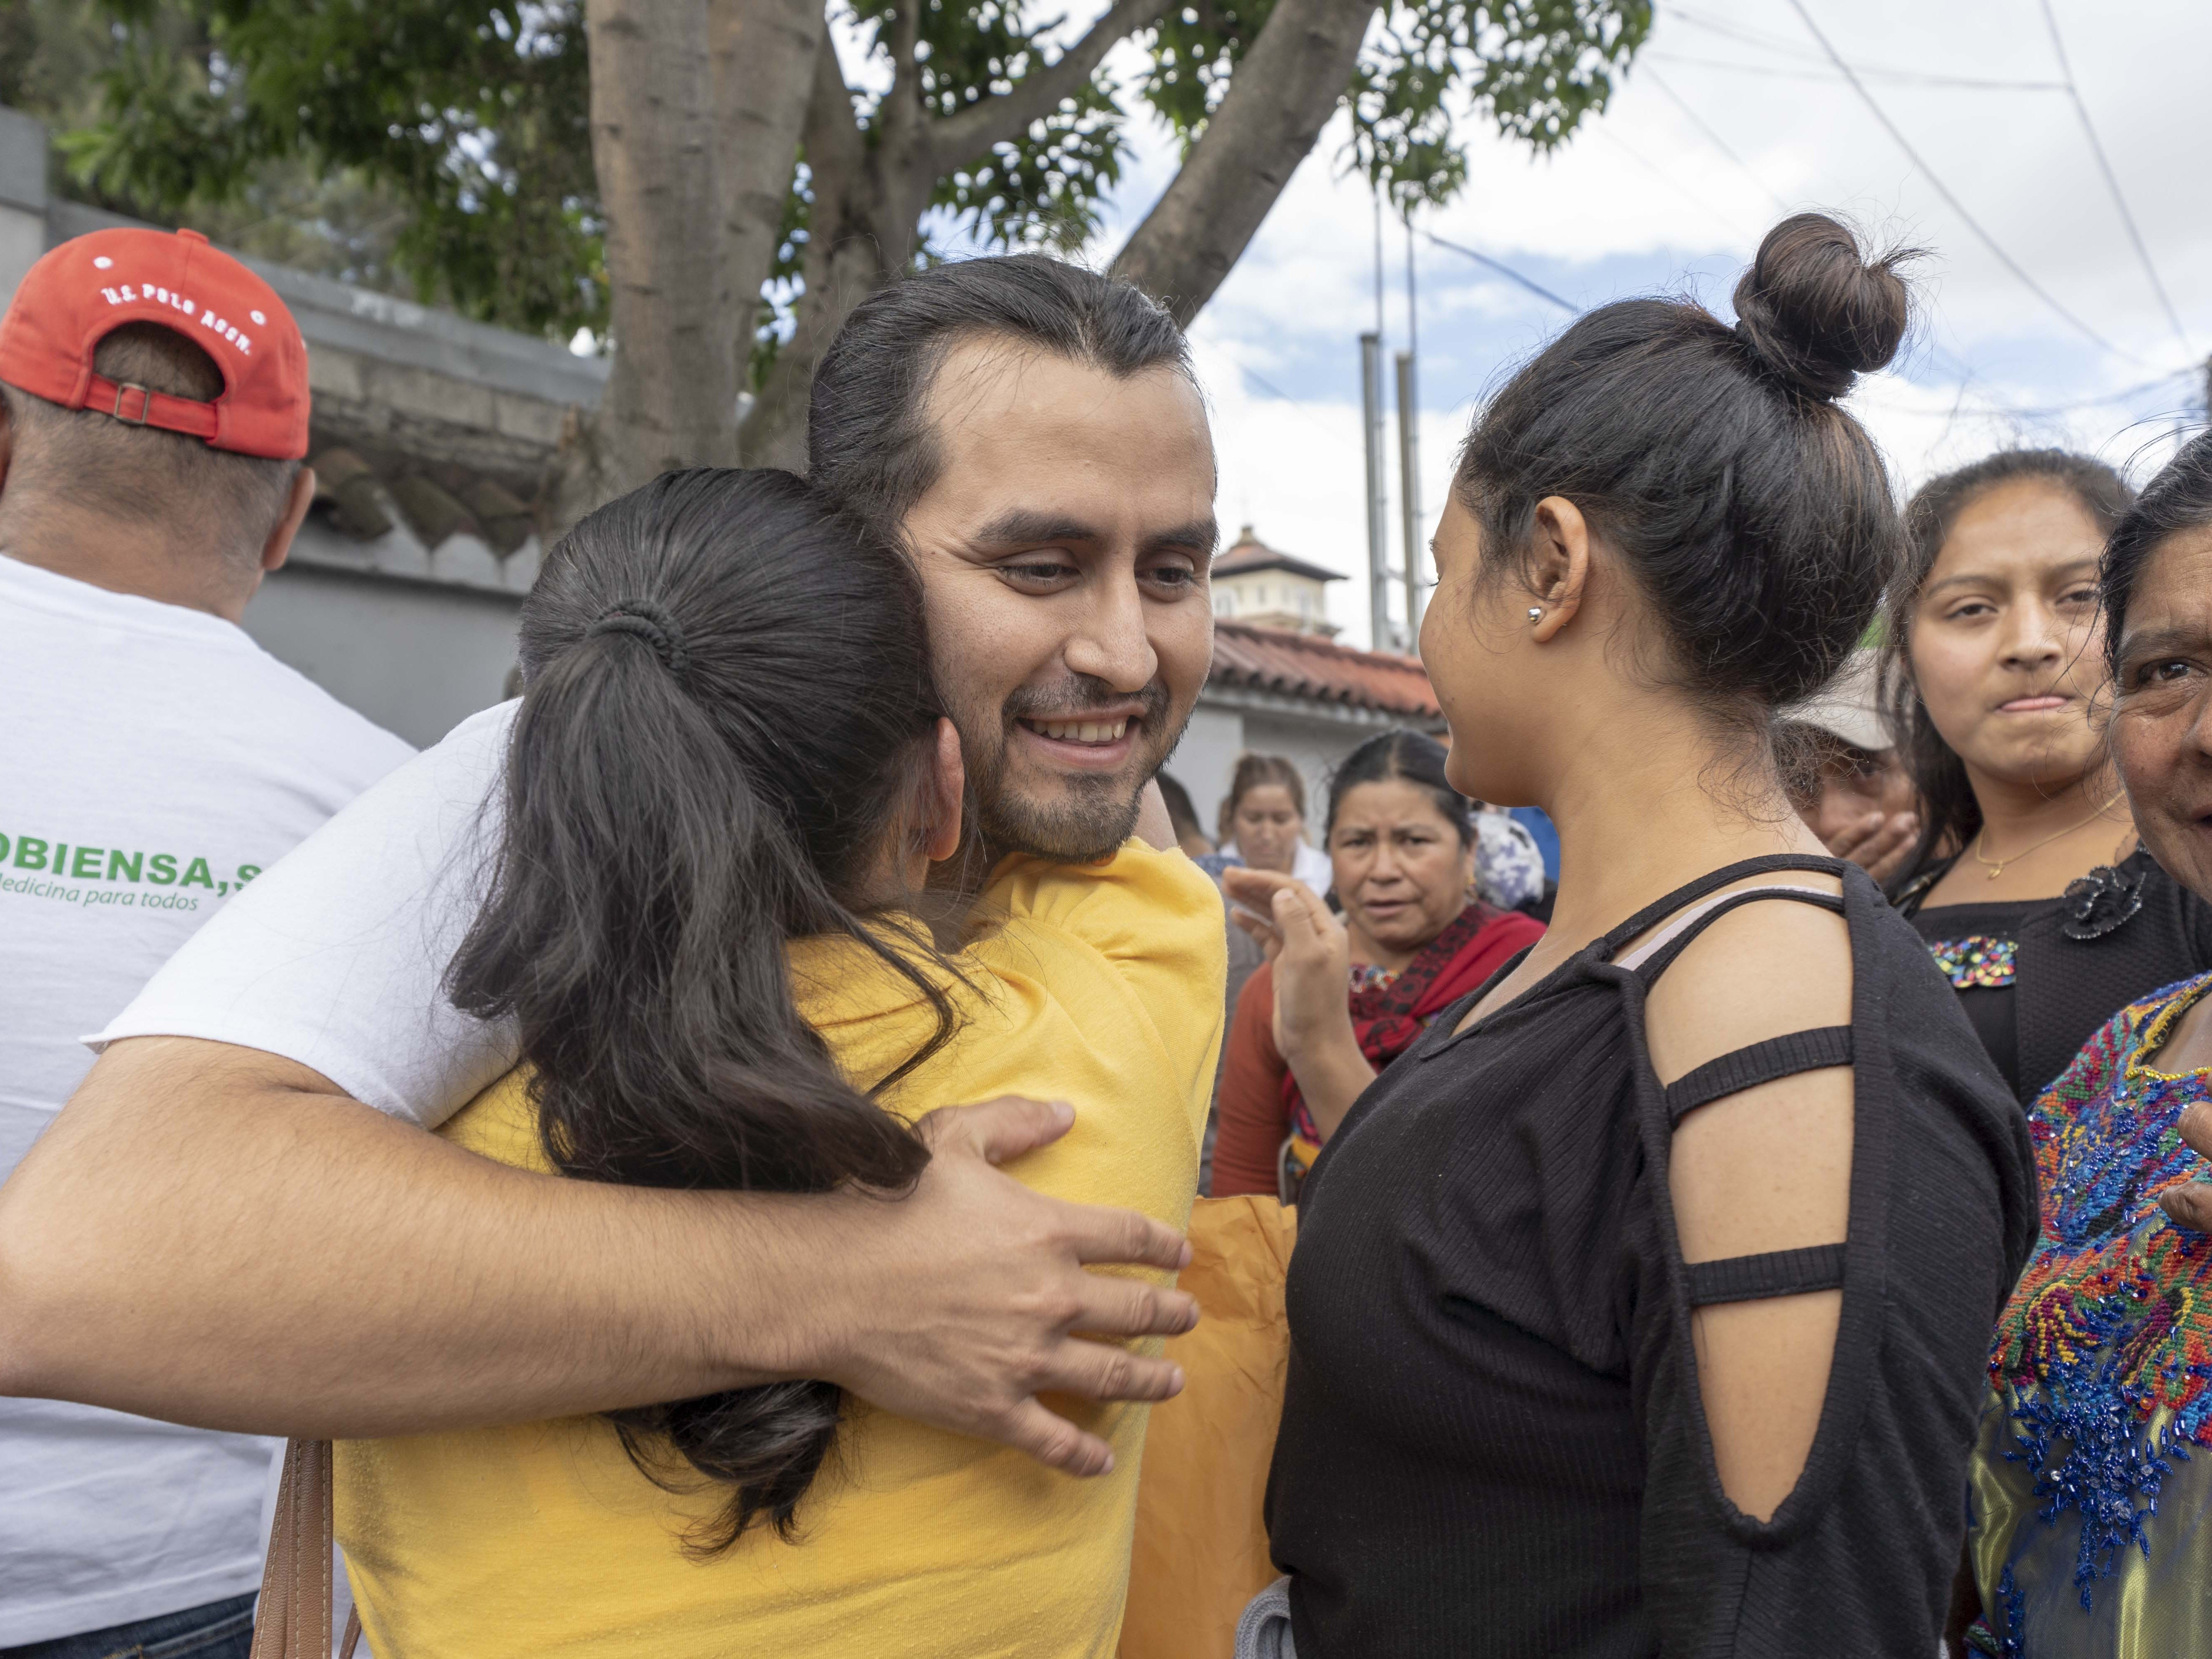 A young man hugs his family after being deported from the United States to Guatemala. He said he had been living in New York for 15 years.